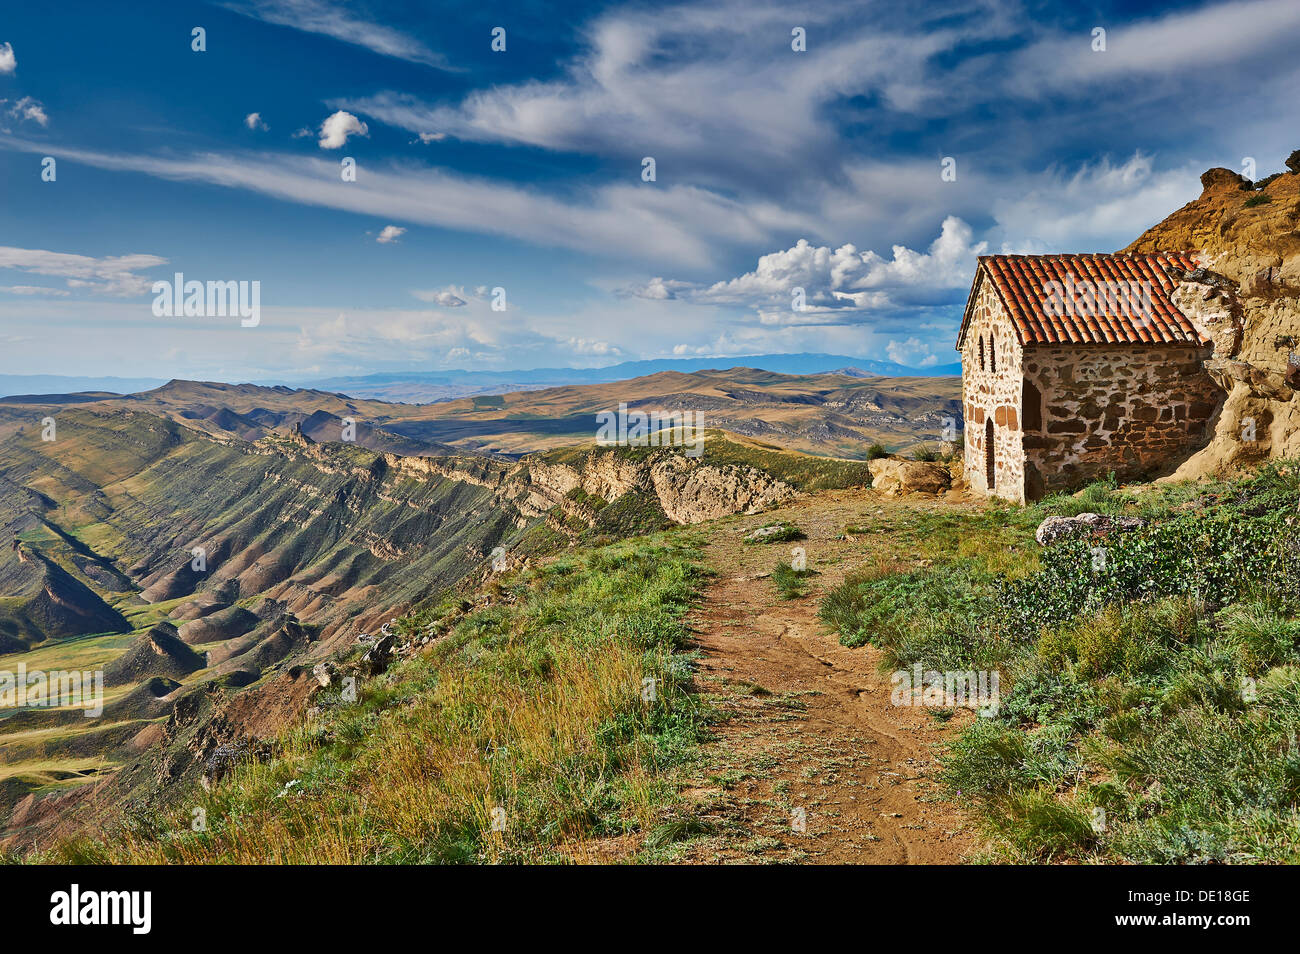 deserted landscape at the Azerbaijan border, David Gareja, Georgia - Stock Image